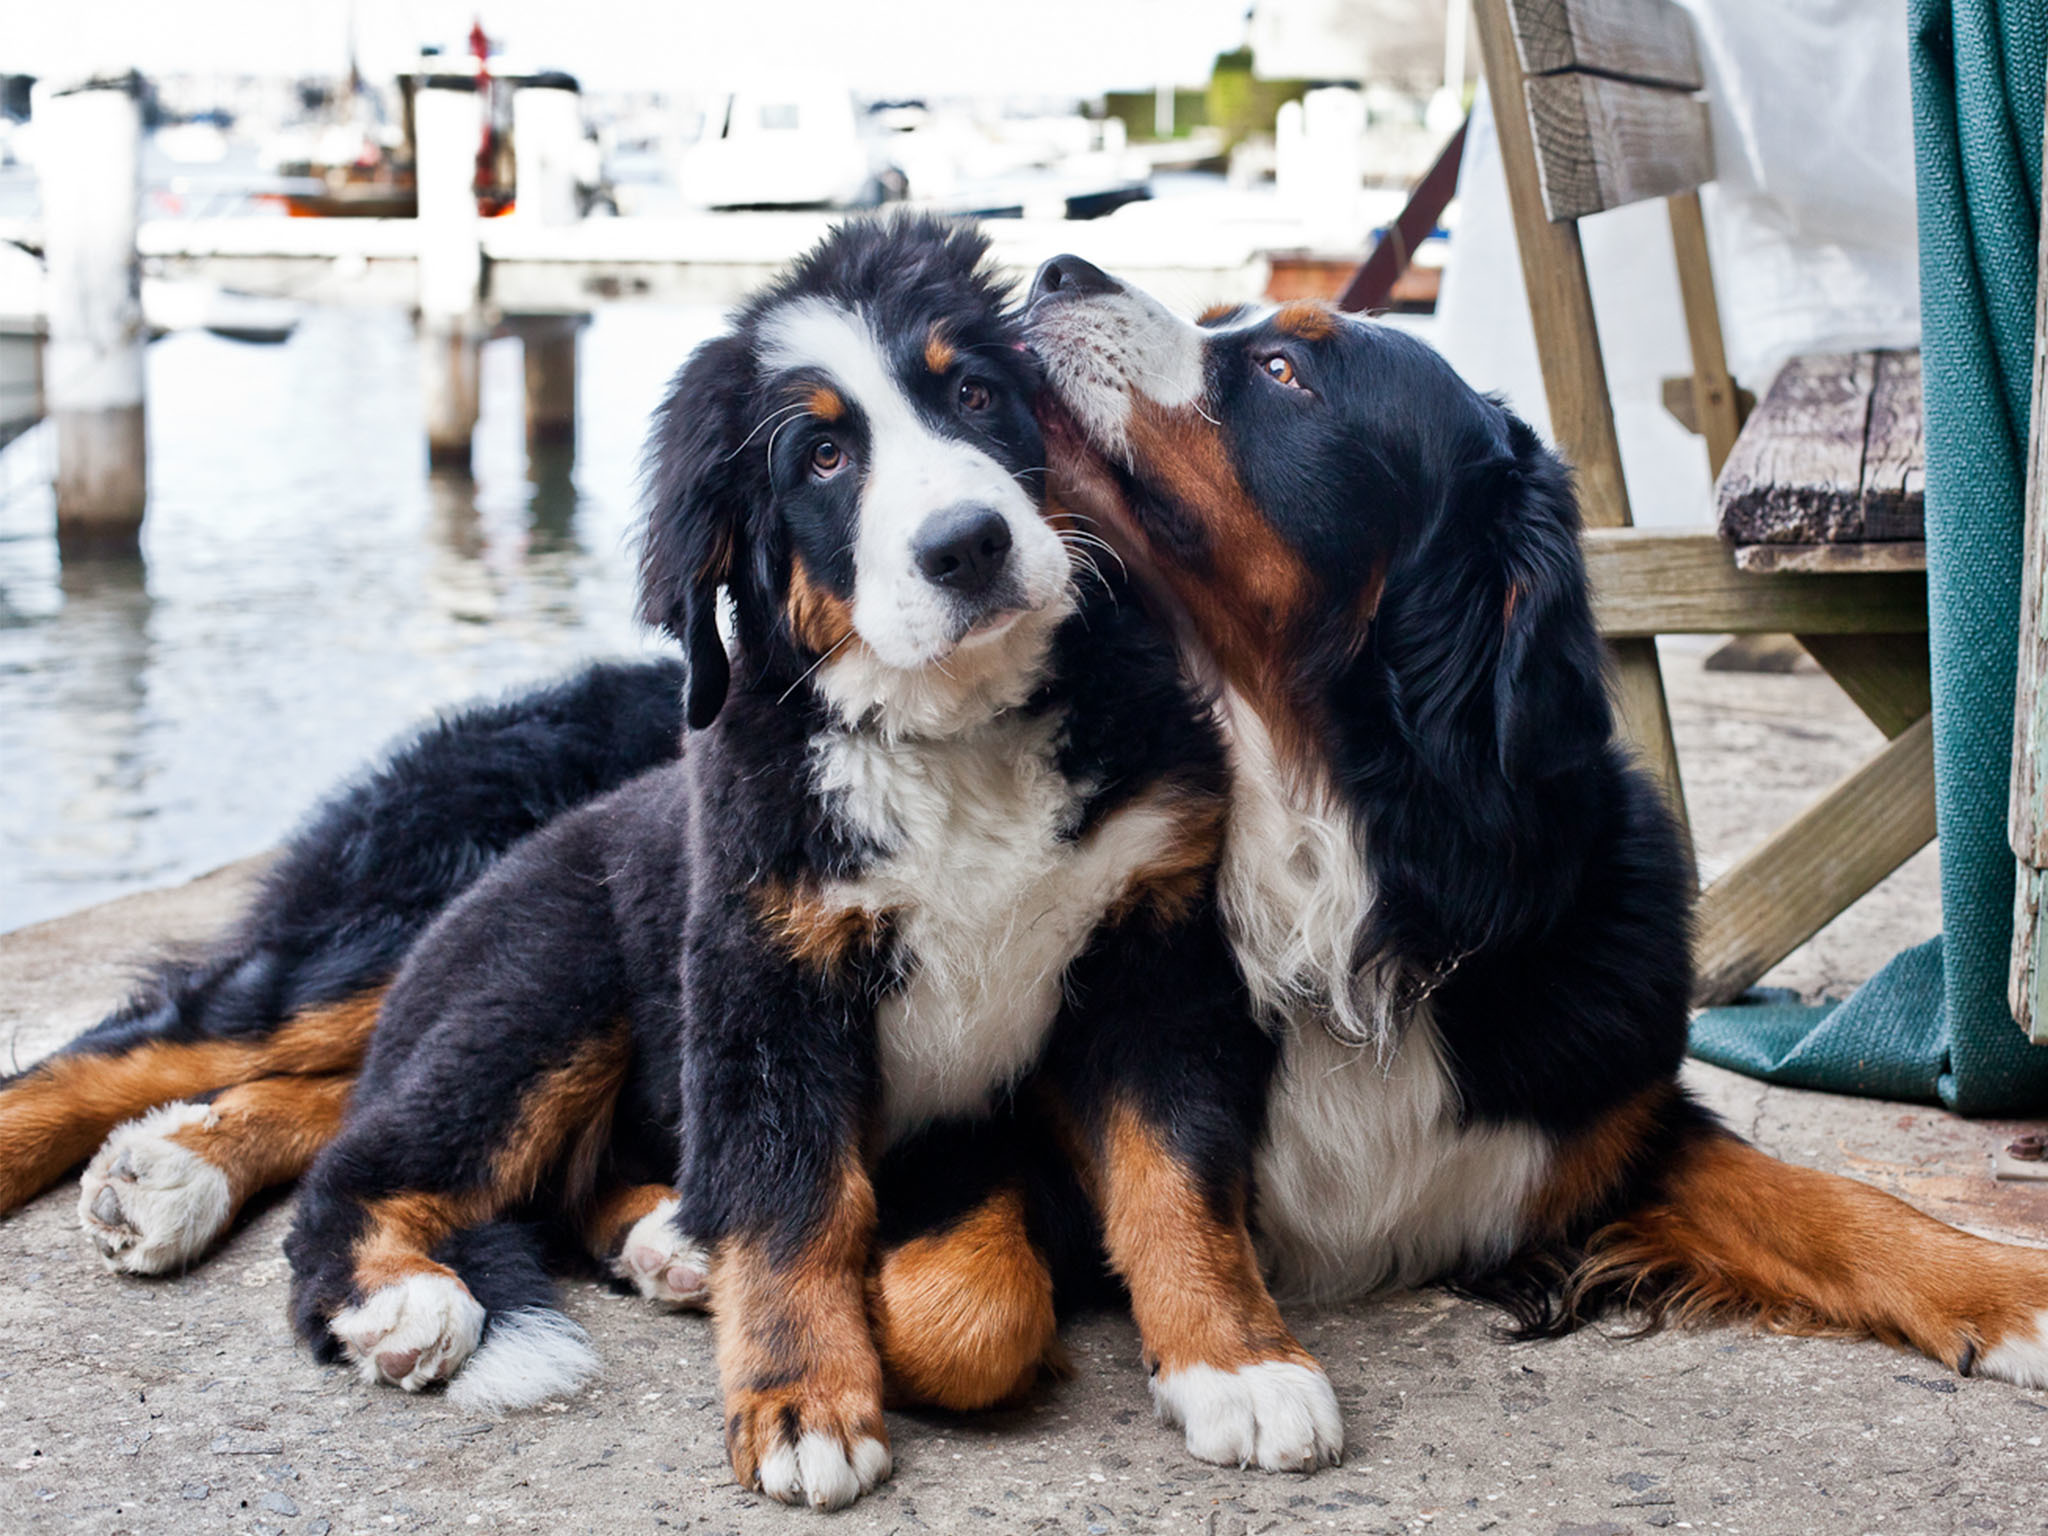 Harrison and Phoebe the Bernese Mountain Dogs at Ensemble Theatre SLOP